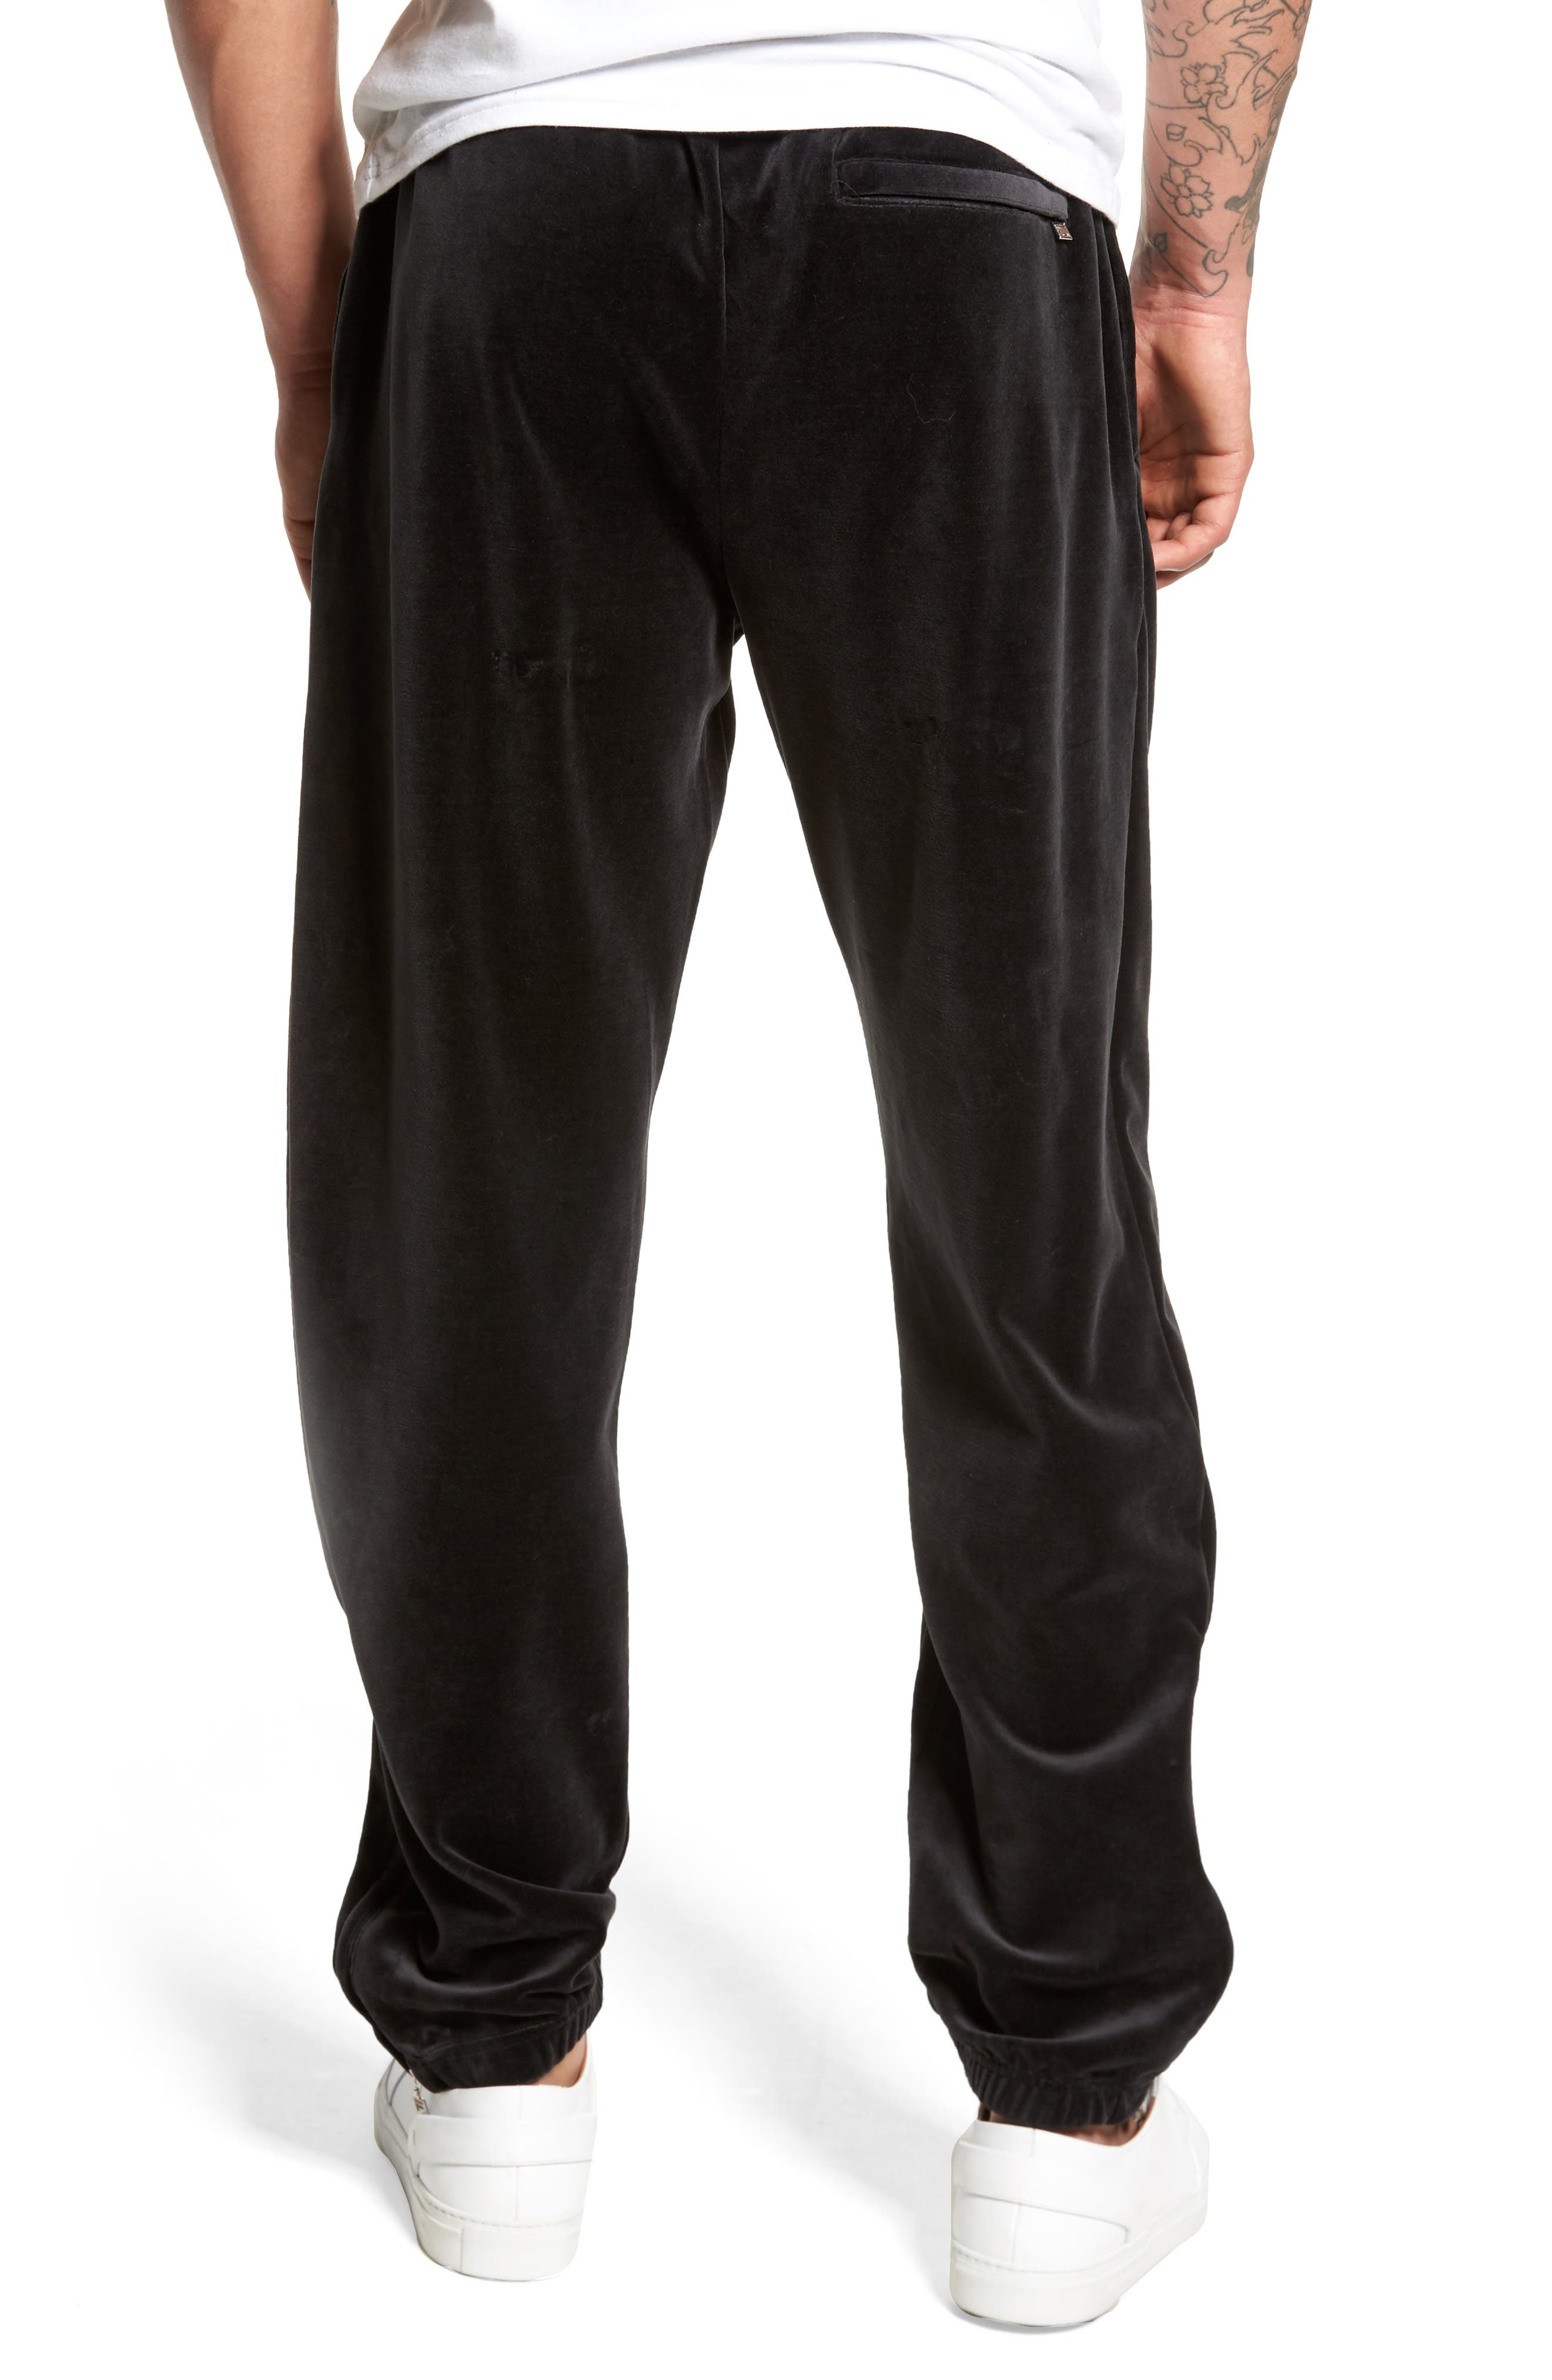 USA Slim Fit Velour Track Pants,                             Alternate thumbnail 2, color,                             001